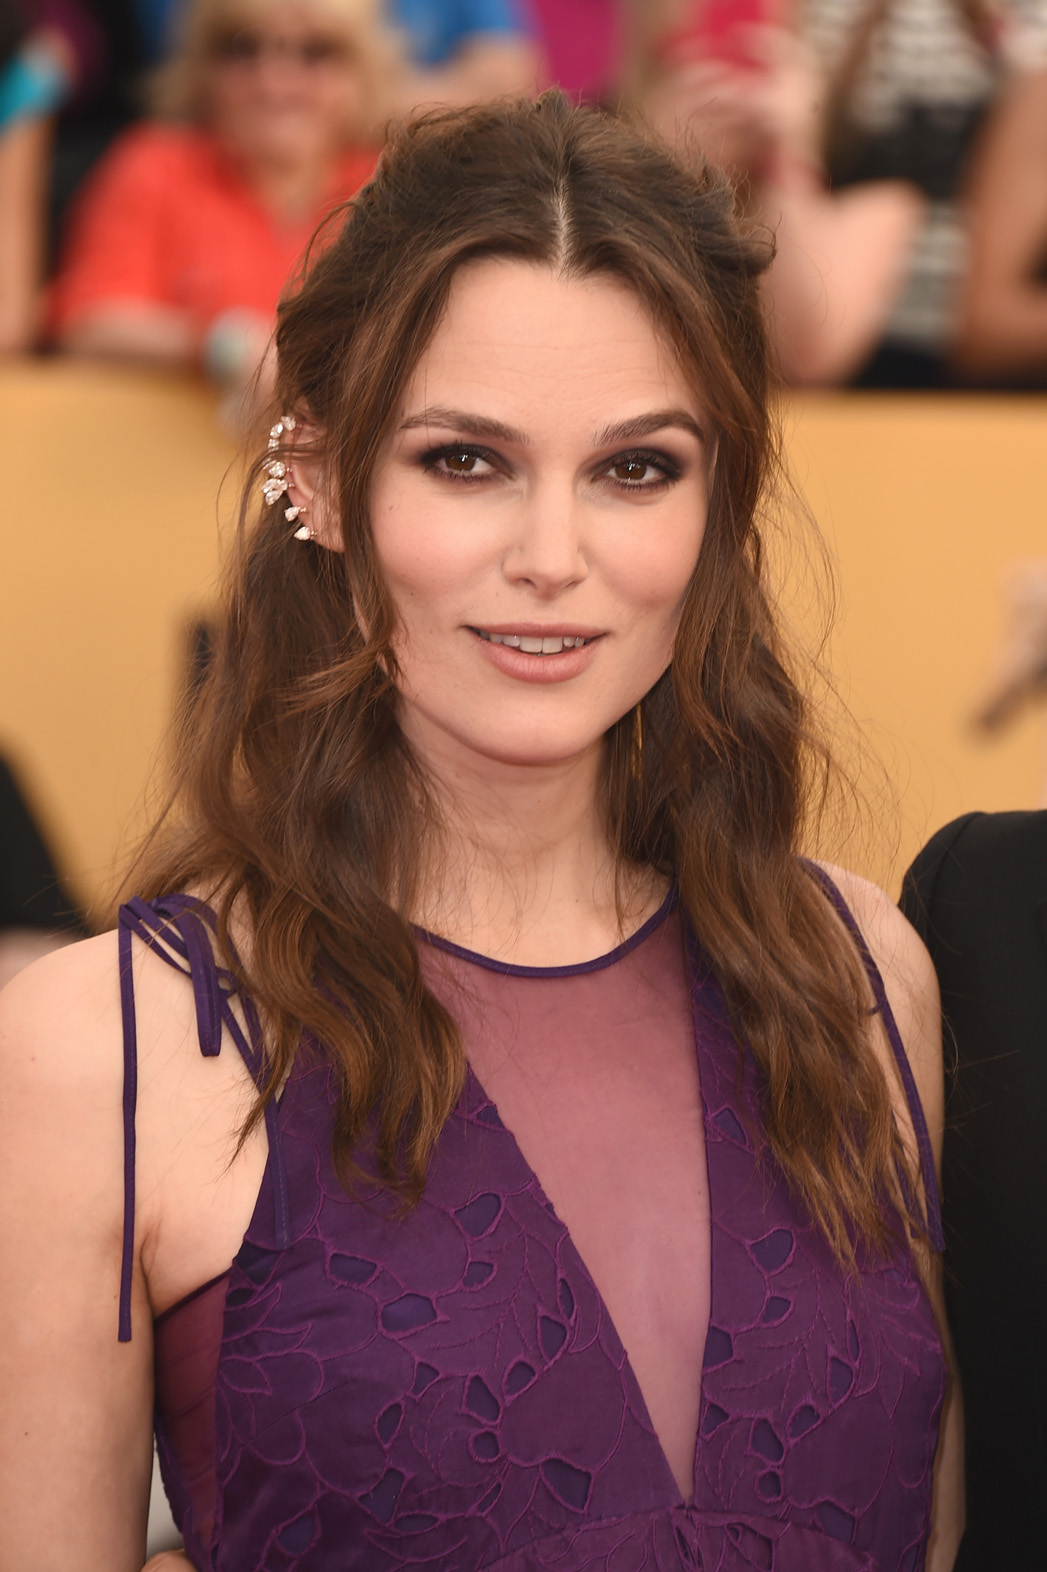 Kiera Knightley Hair - P 2015